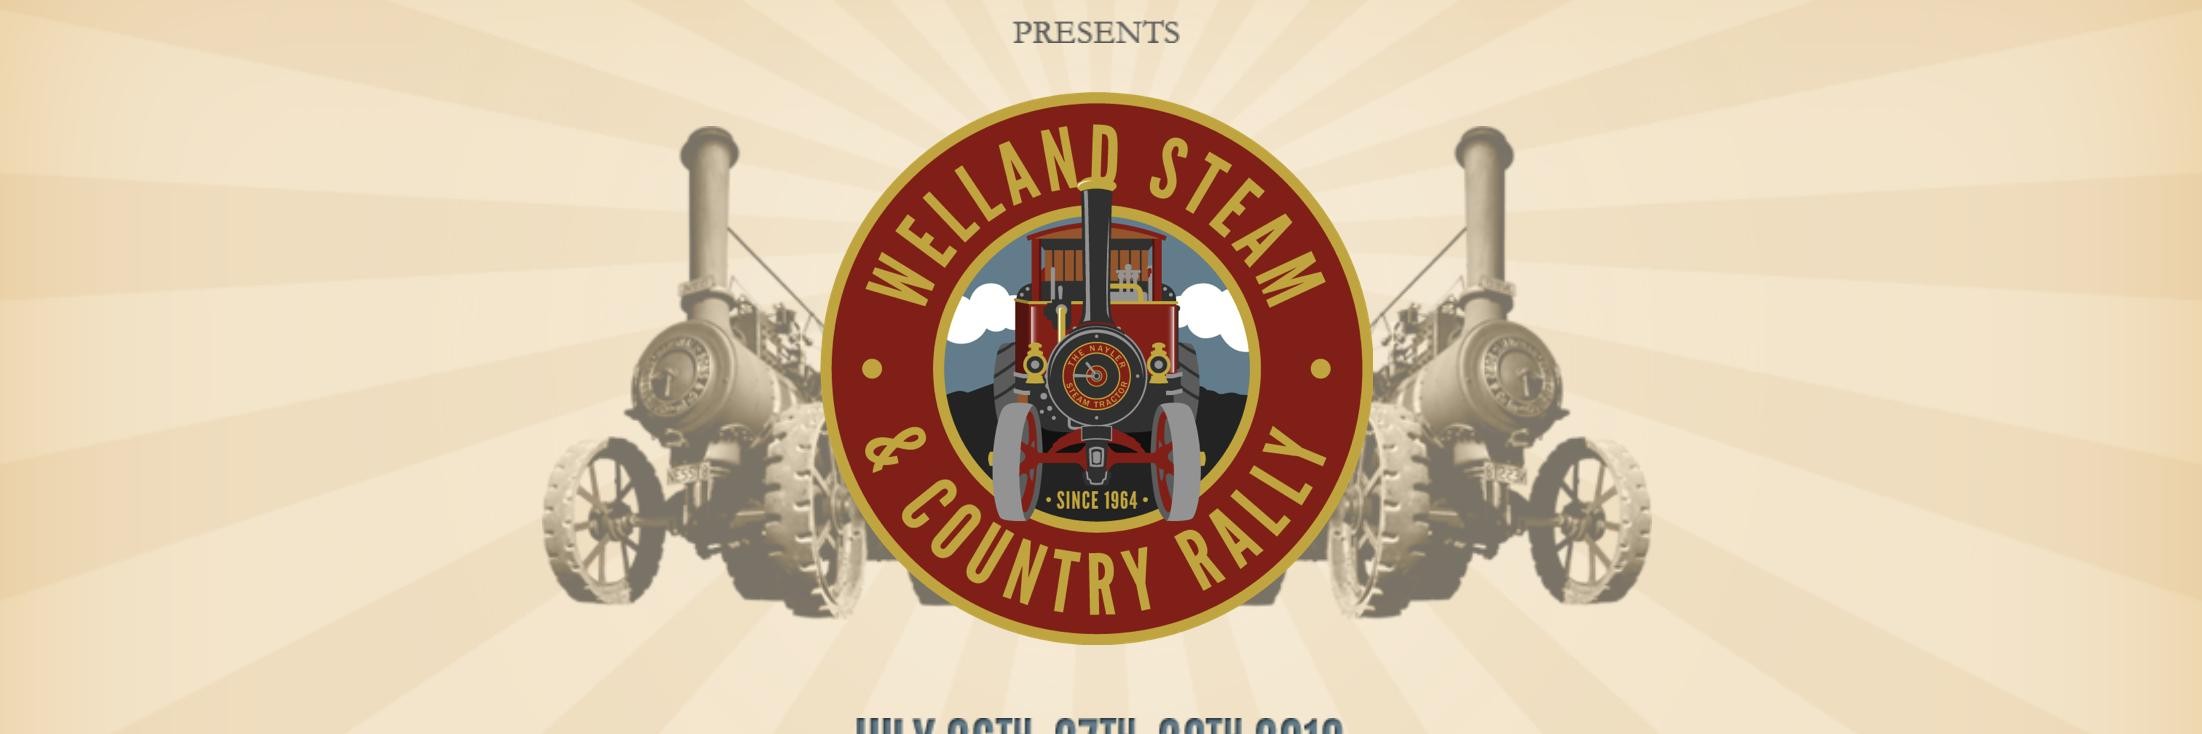 View listings for Welland Steam Rally's forthcoming event and buy tickets online with TicketSource. https://t.co/rT11GPfJss